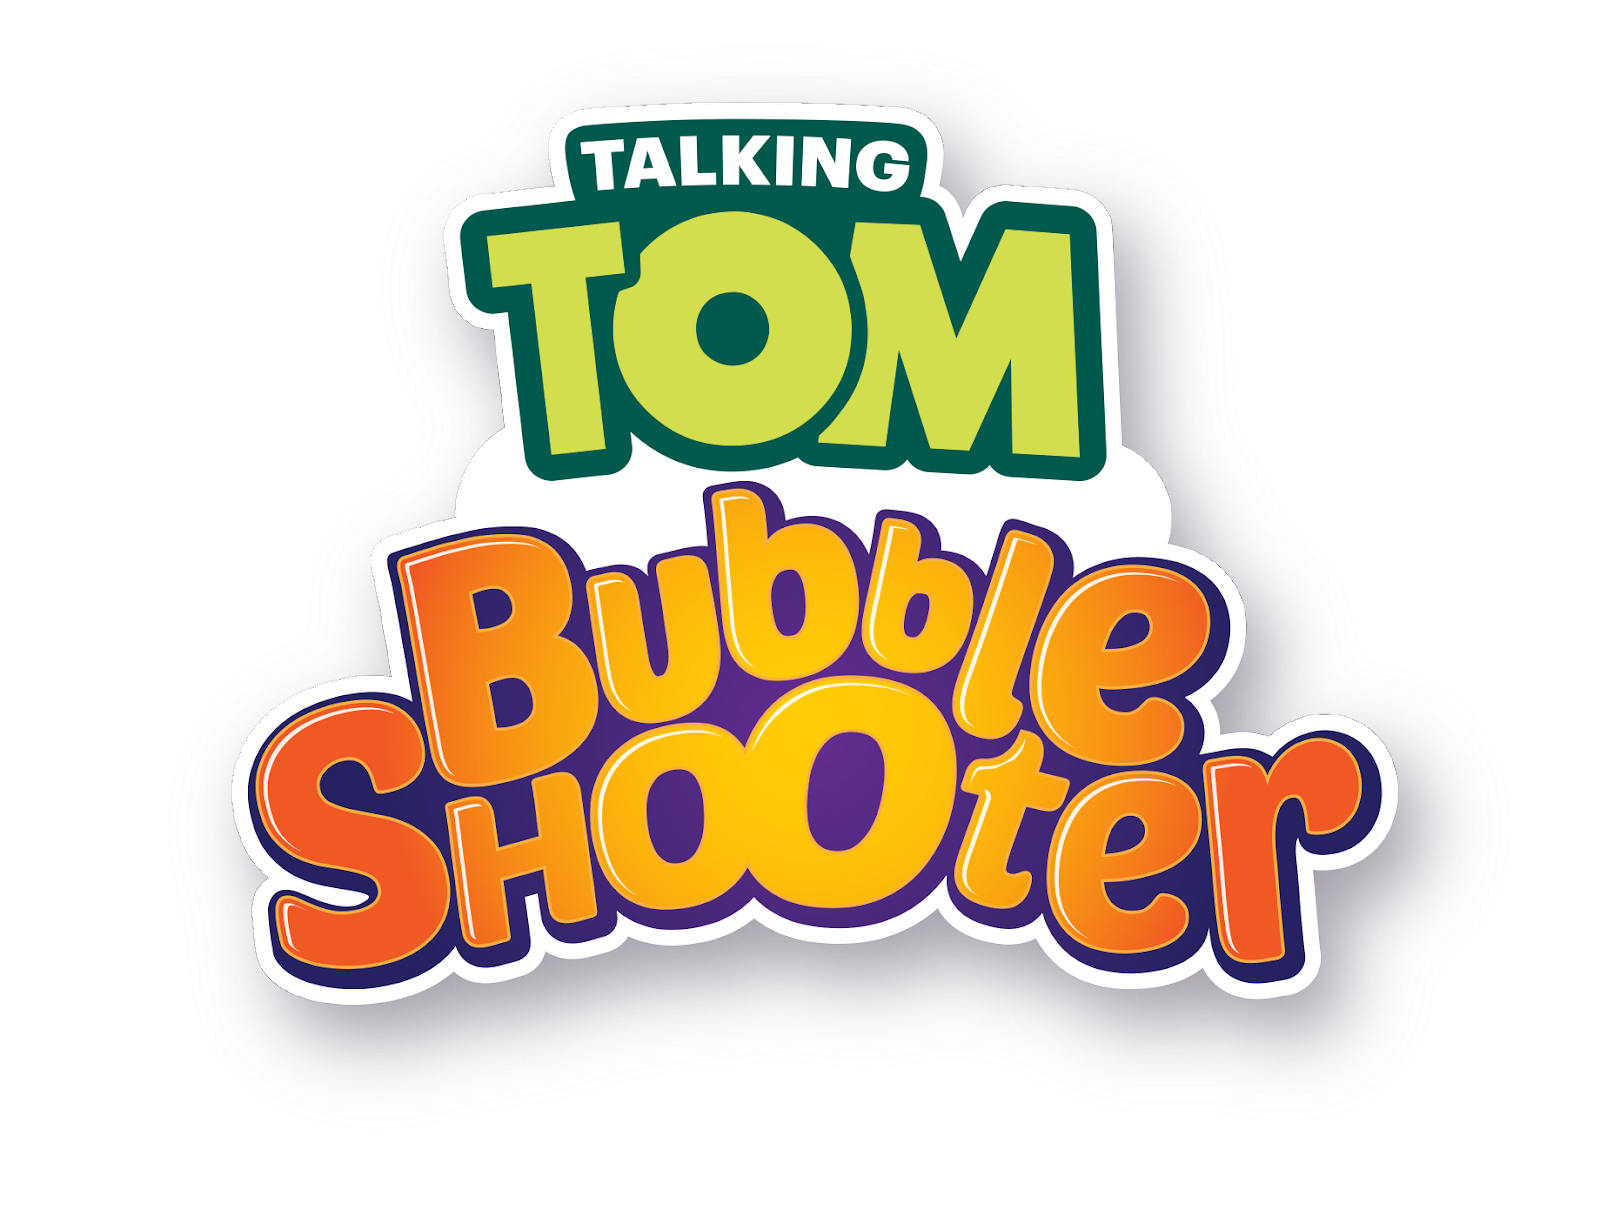 TT_BubbleShooter_Logo_ForWhiteBackgroundOnly_RGB.png